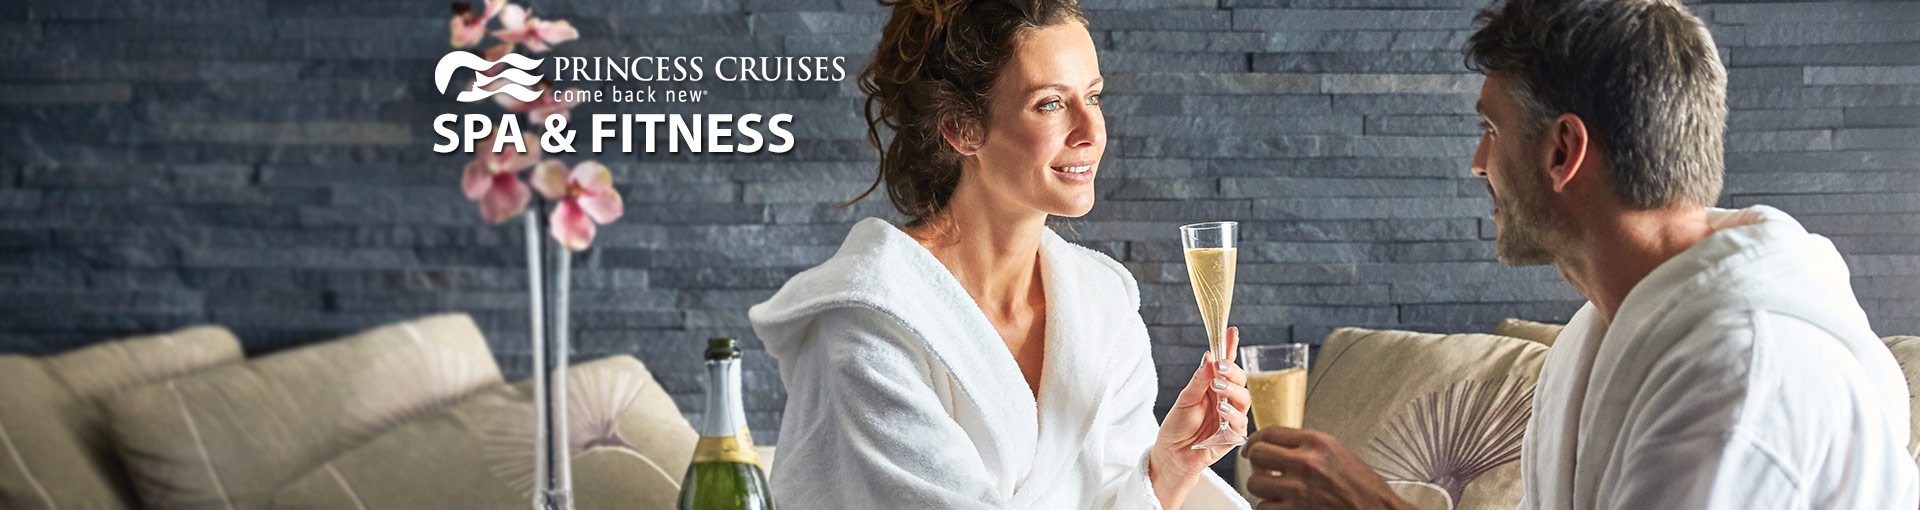 Princess Cruises Spa & Fitness